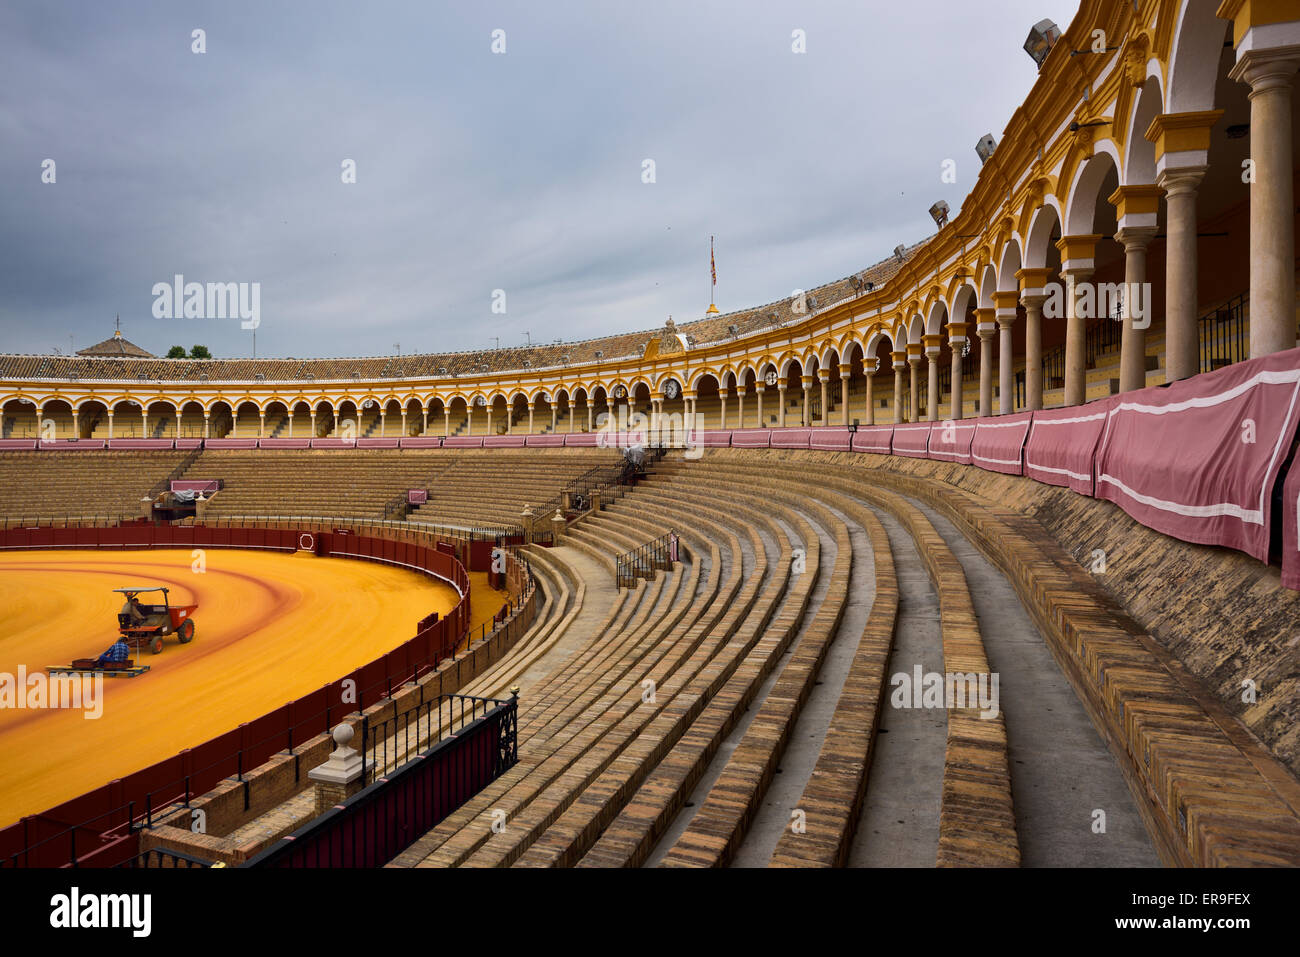 Groomers on the golden sand with empty stands at the oval Seville bullfighting ring - Stock Image